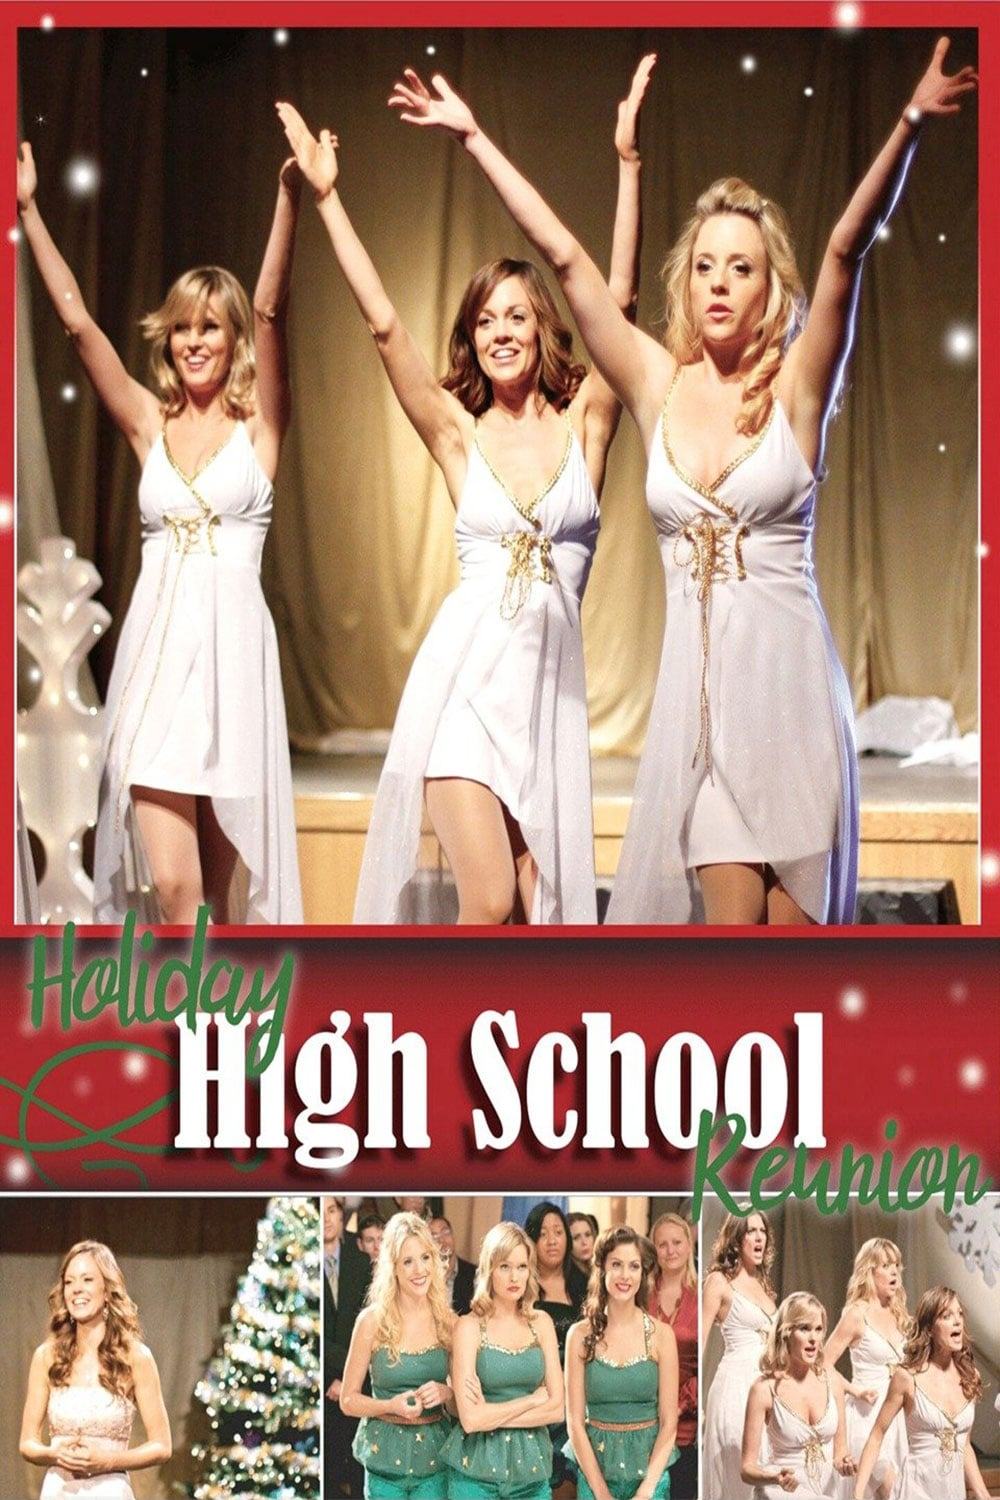 Holiday High School Reunion on FREECABLE TV